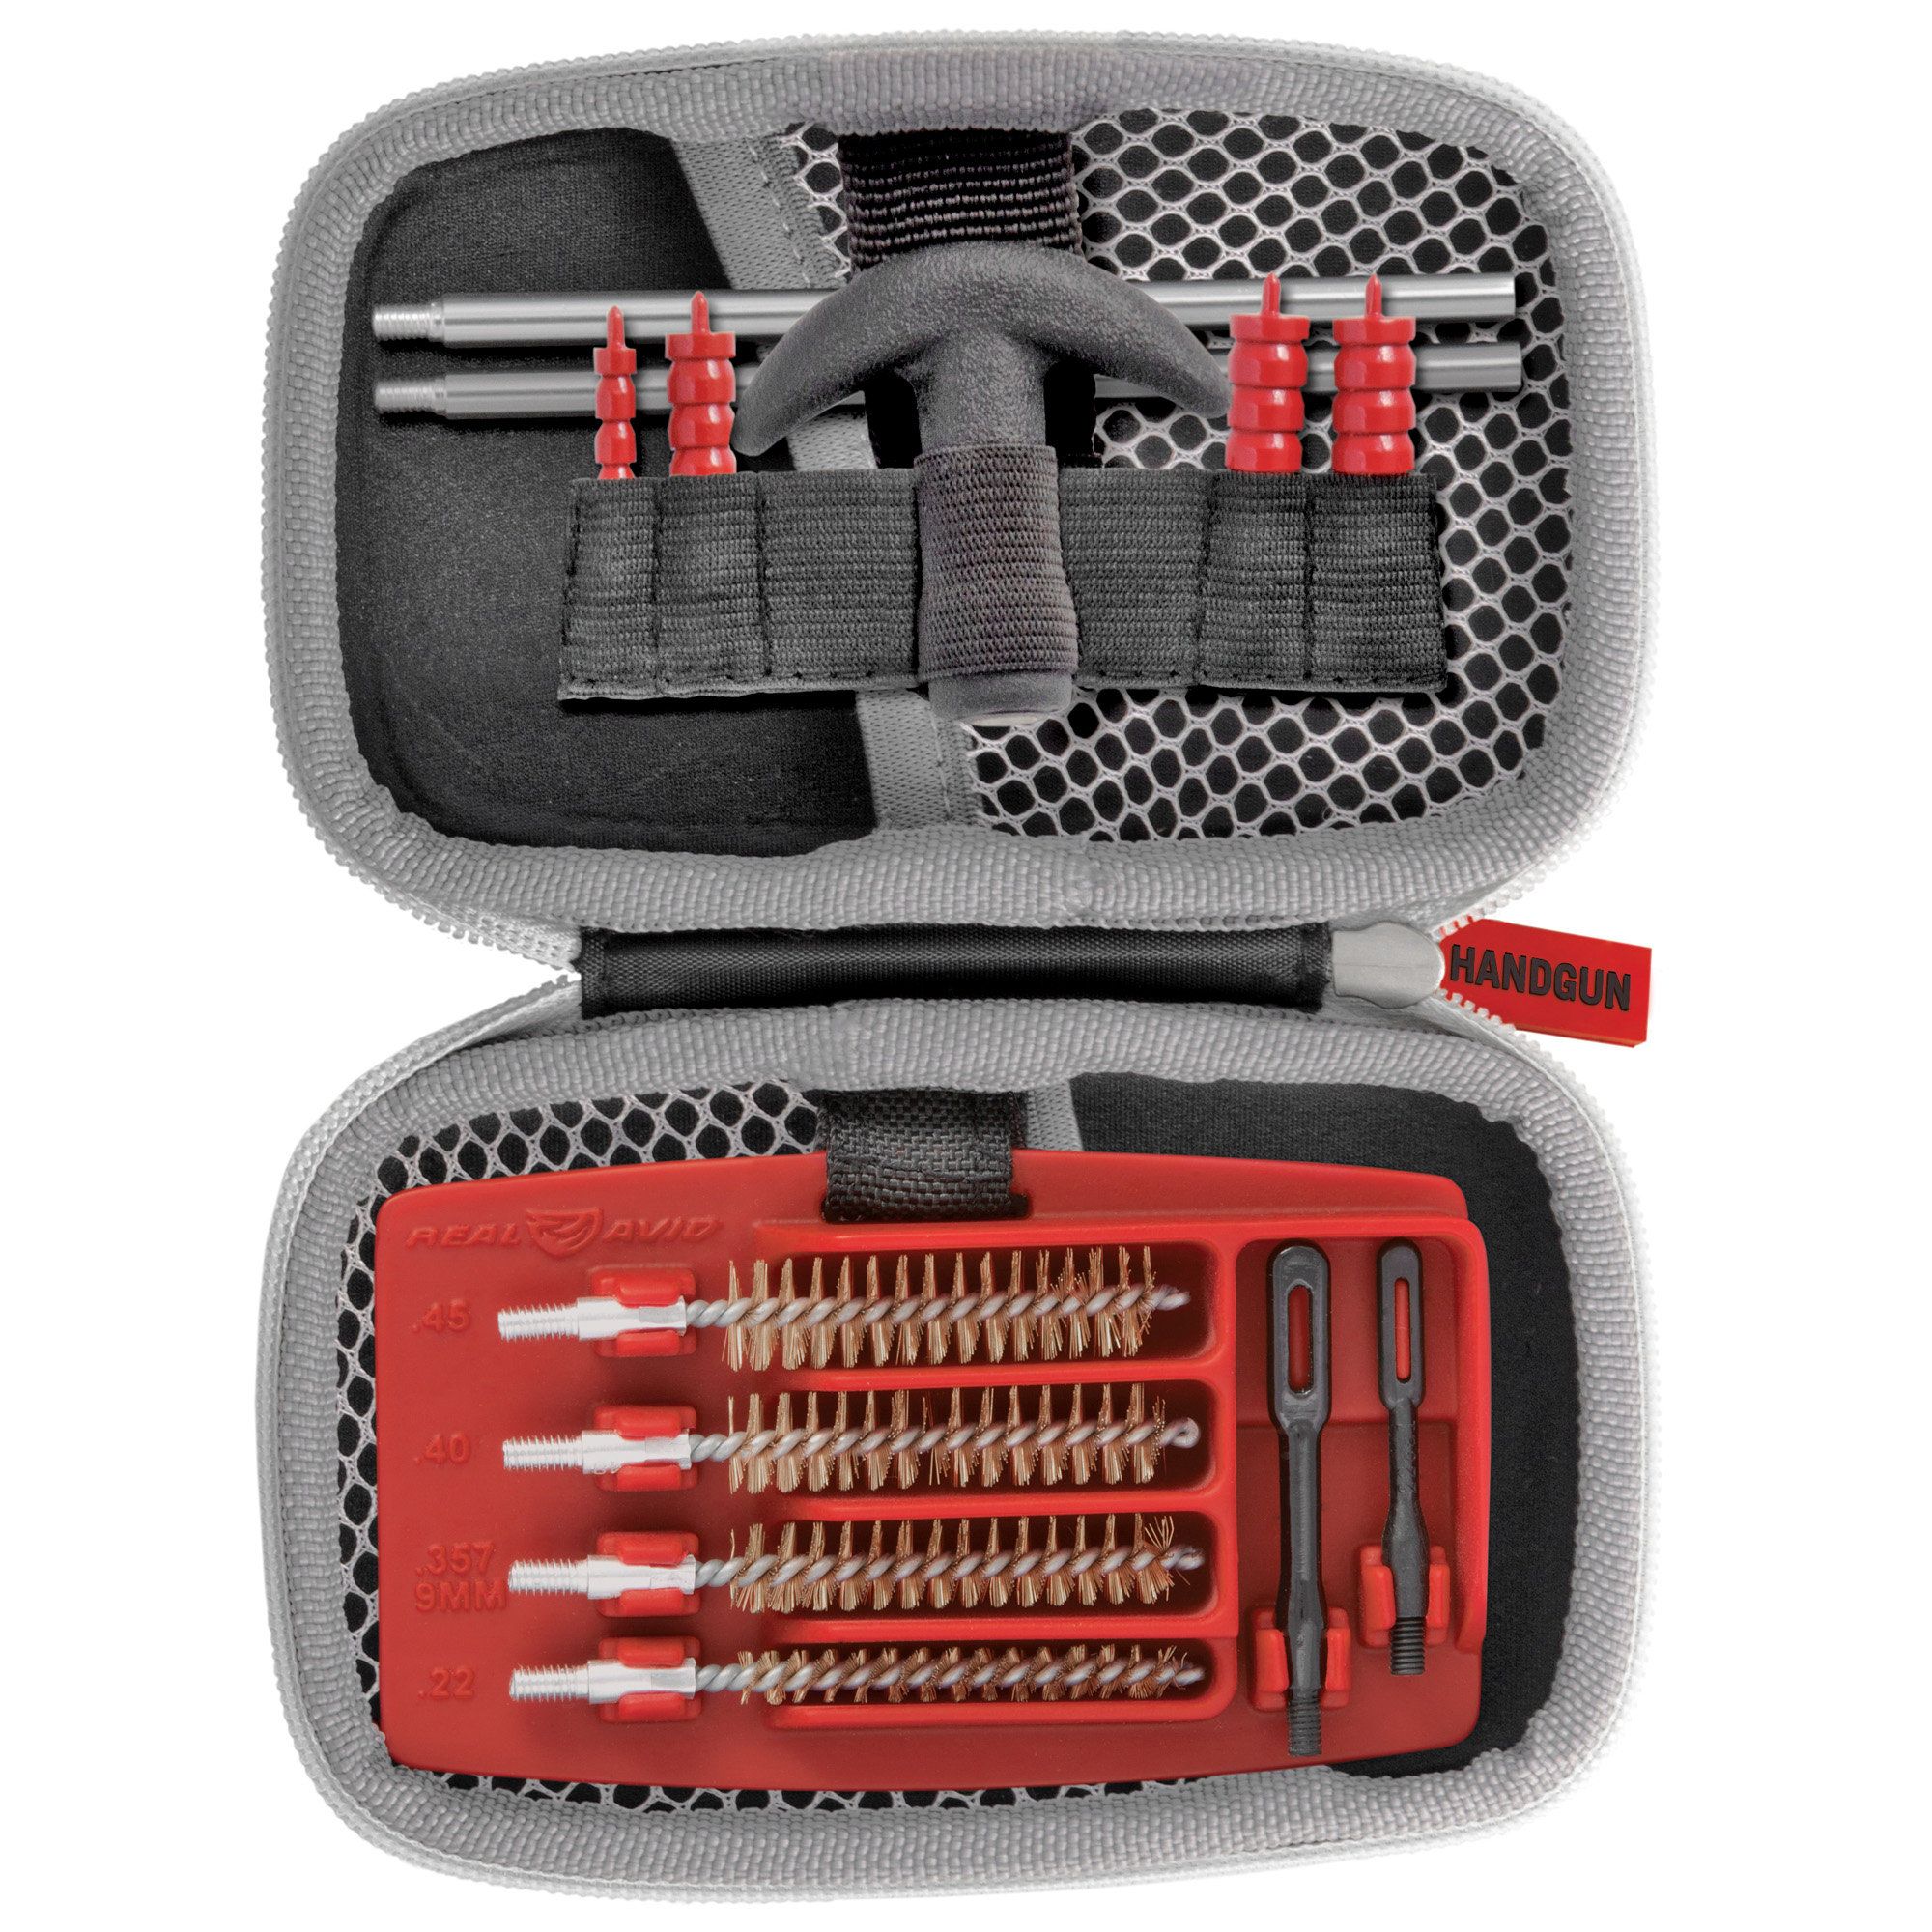 "The Gun Boss Handgun Cleaning Kit is a complete system to keep your gun clean and firing accurately. Aluminum connectors"" nylon jags"" slotted tips and phosphor bronze brushes protect bores. The Gun Boss Handgun Cleaning Kit is a complete cleaning system that moves easily between the field"" range and workbench."